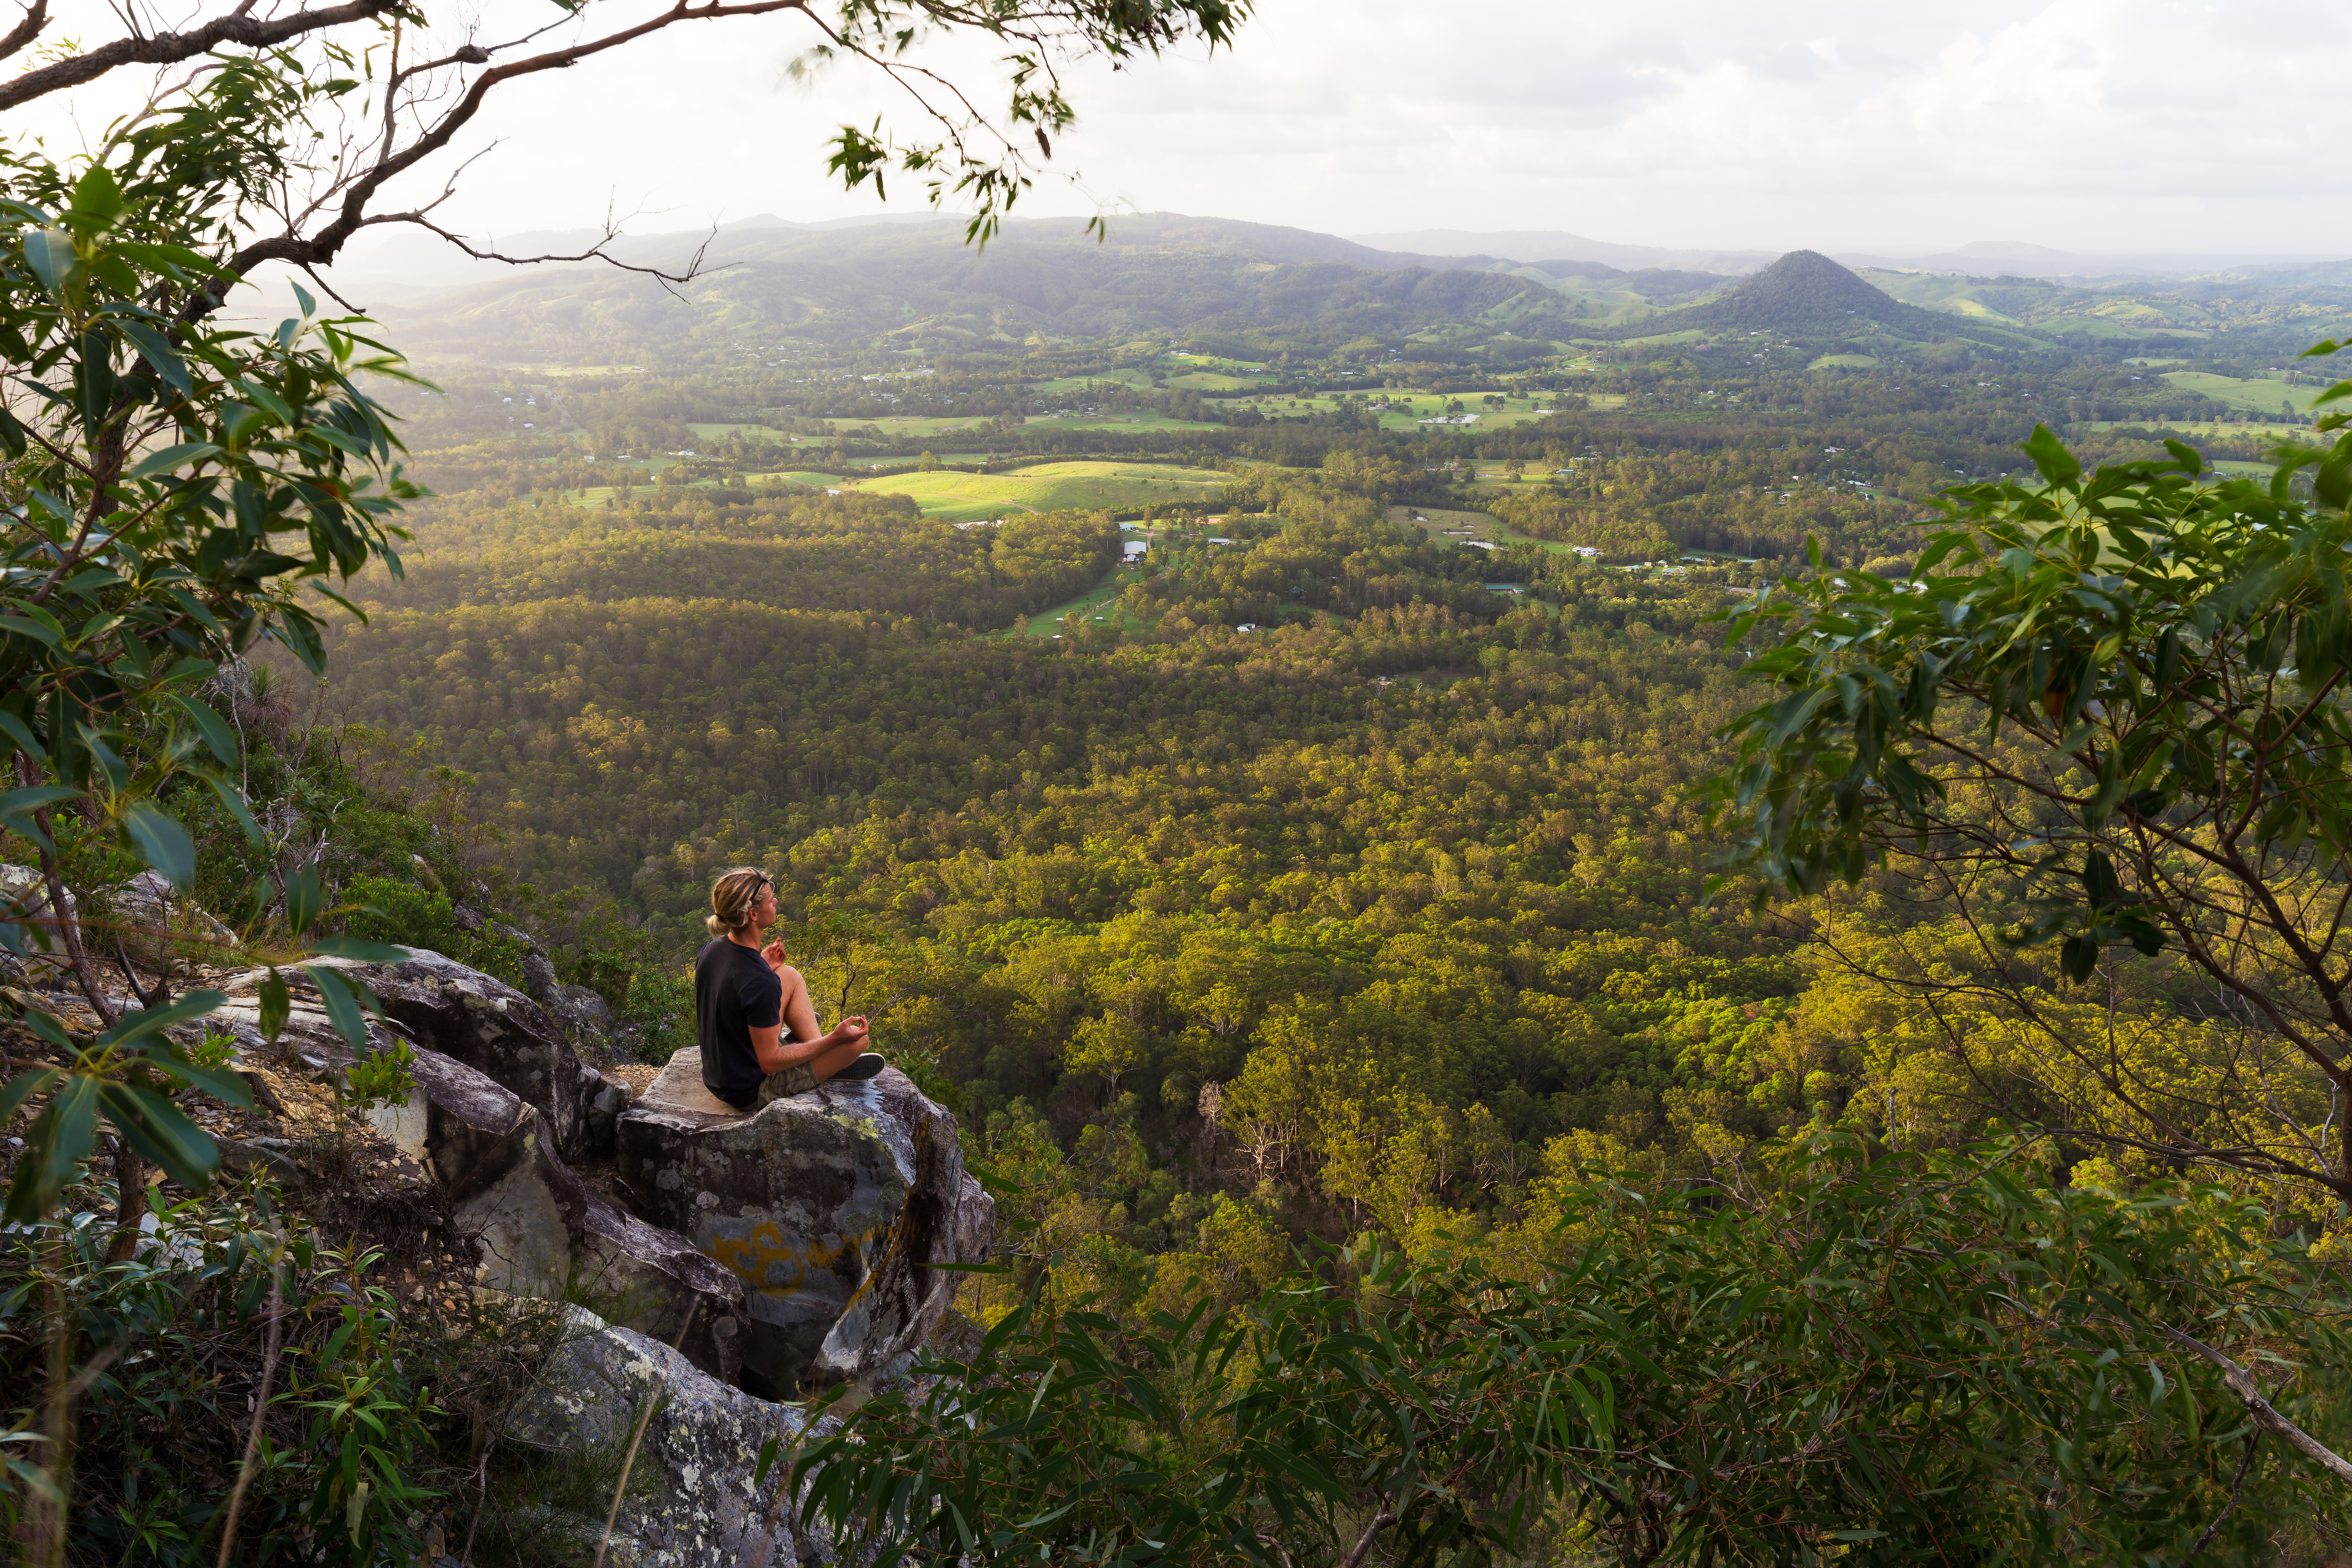 A young man meditates on top of a mountain with expansive views near Noosa Heads, Australia.